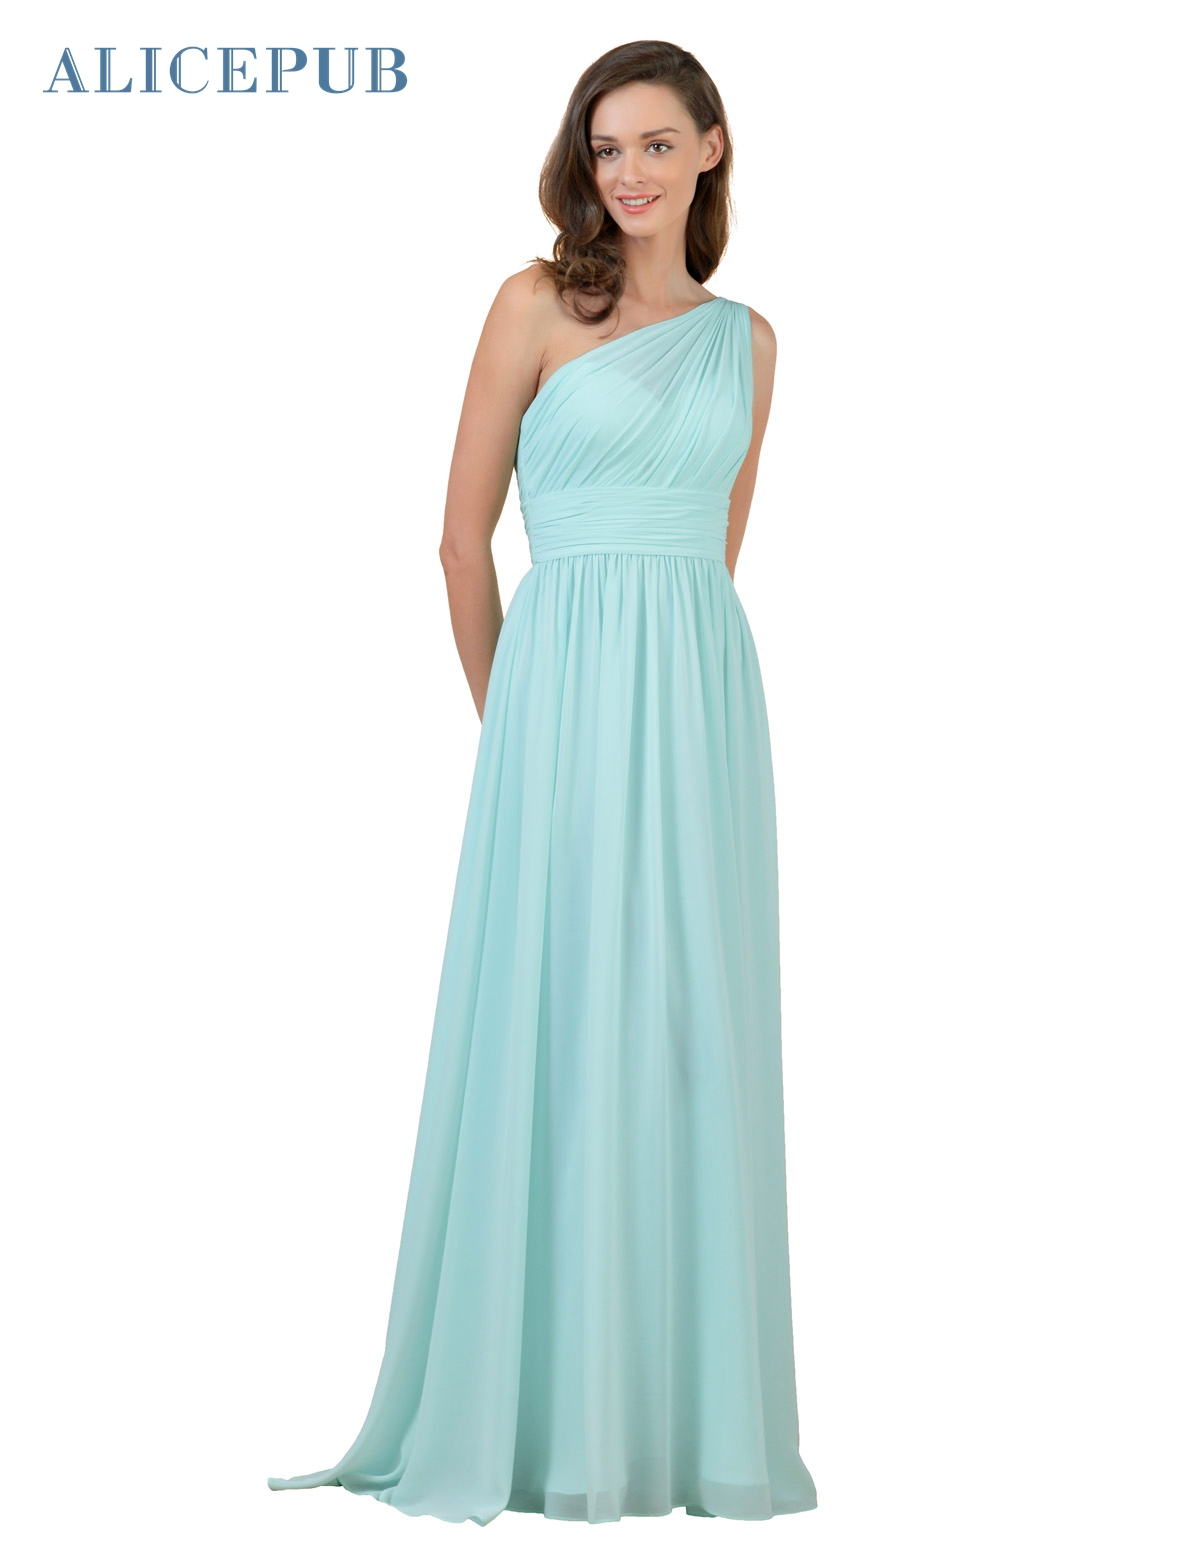 Popular one shoulder bridesmaid dresses long buy cheap one alicepub one shoulder bridesmaid dresses long chiffon bridal party homecoming dressing gown coral purple mint pink ombrellifo Images